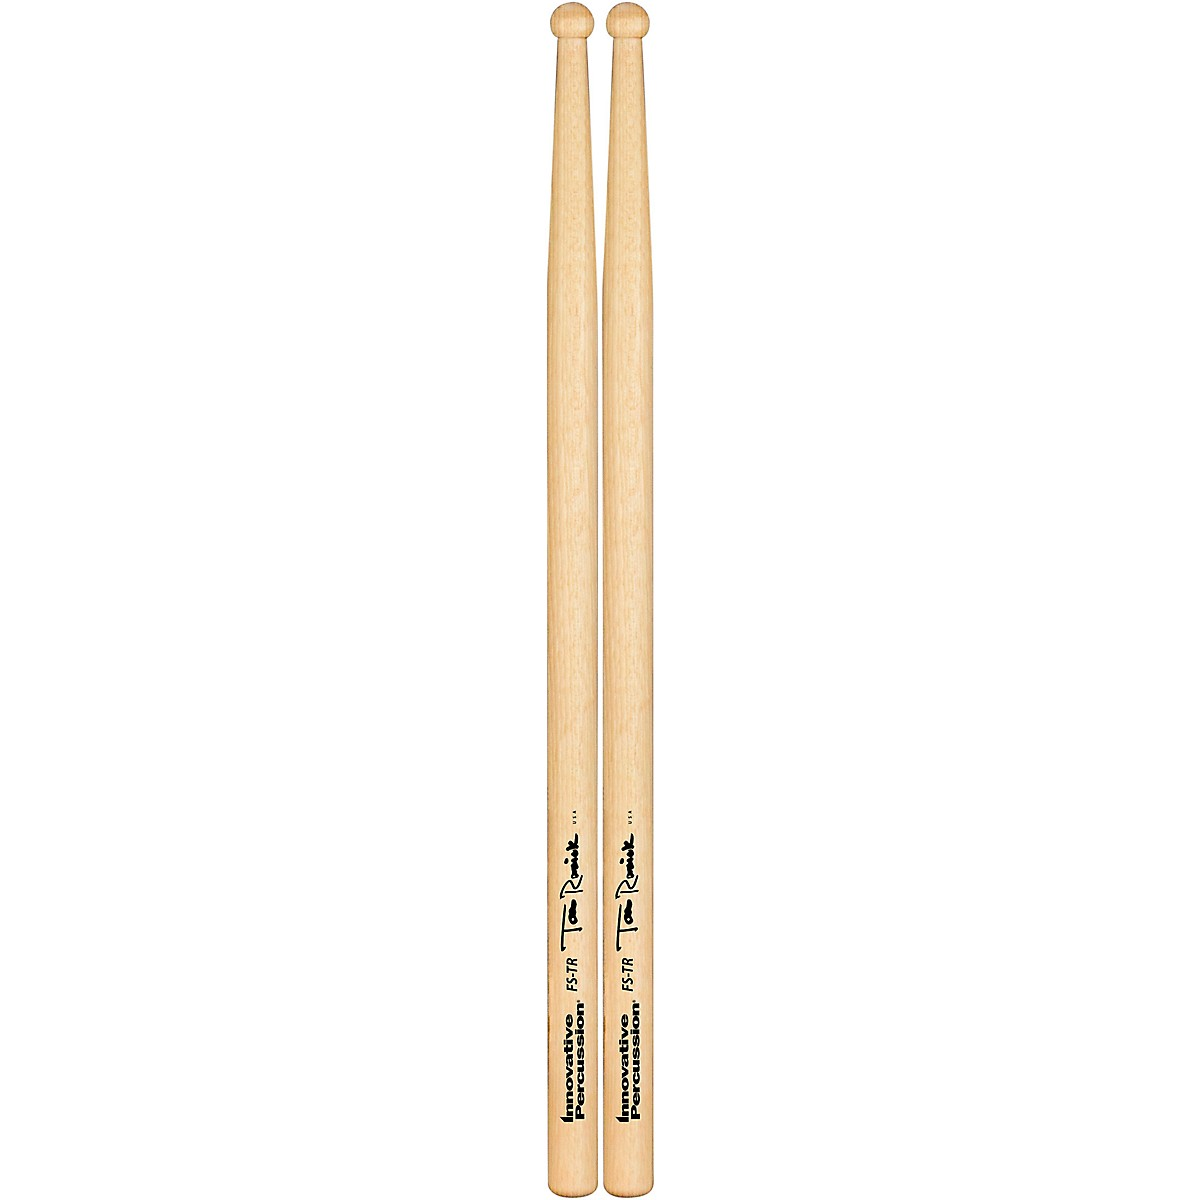 Innovative Percussion Tom Rarick Snare Drum Sticks